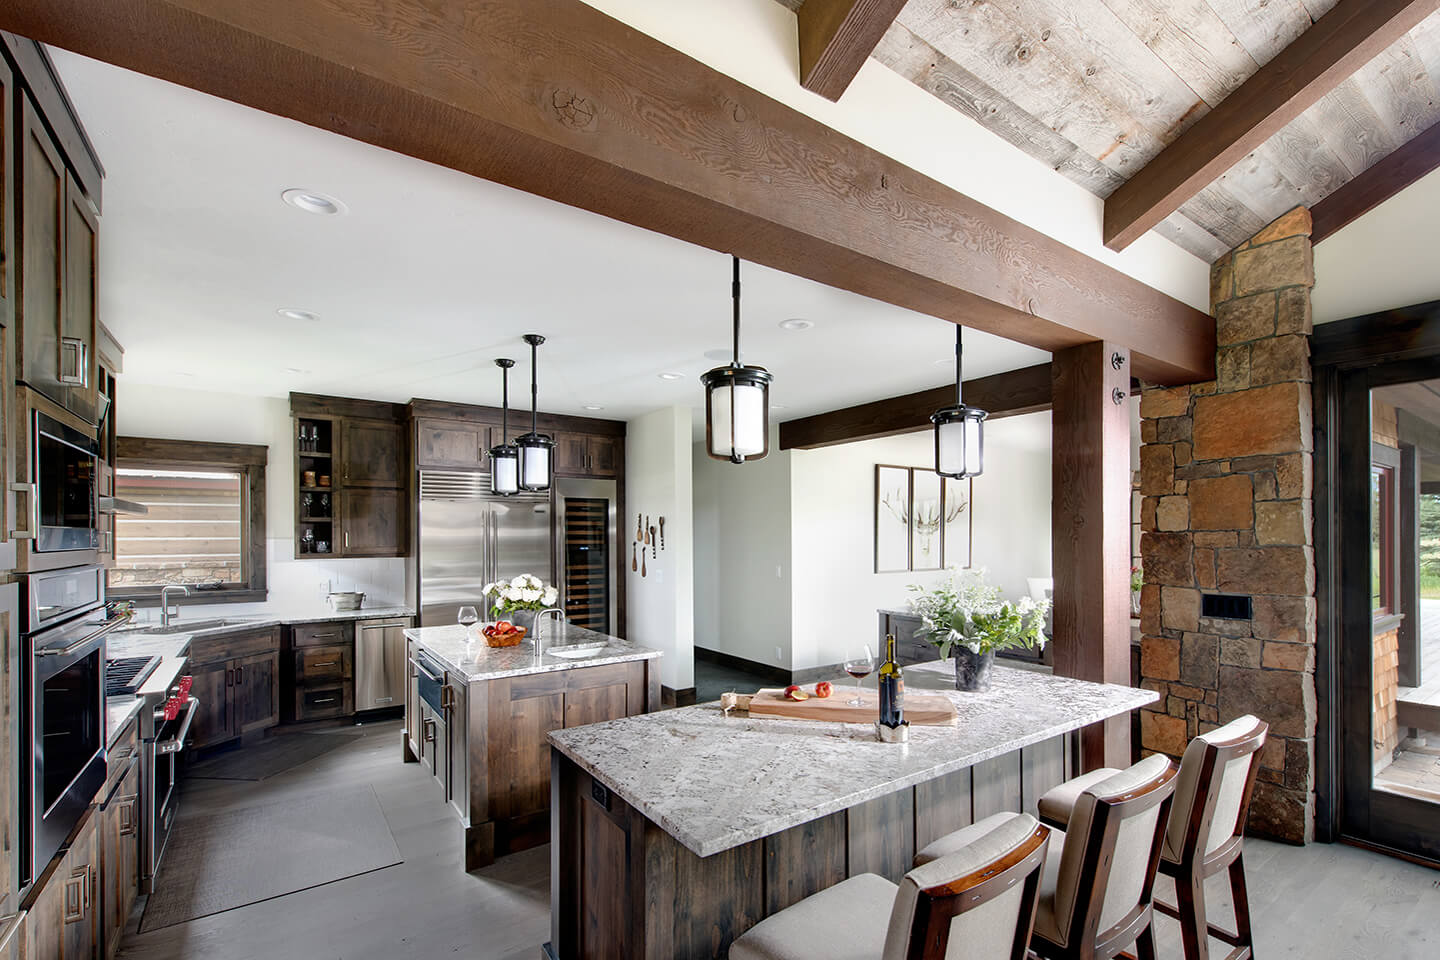 Kitchen with dark stained Douglas fir cabinetry and beams